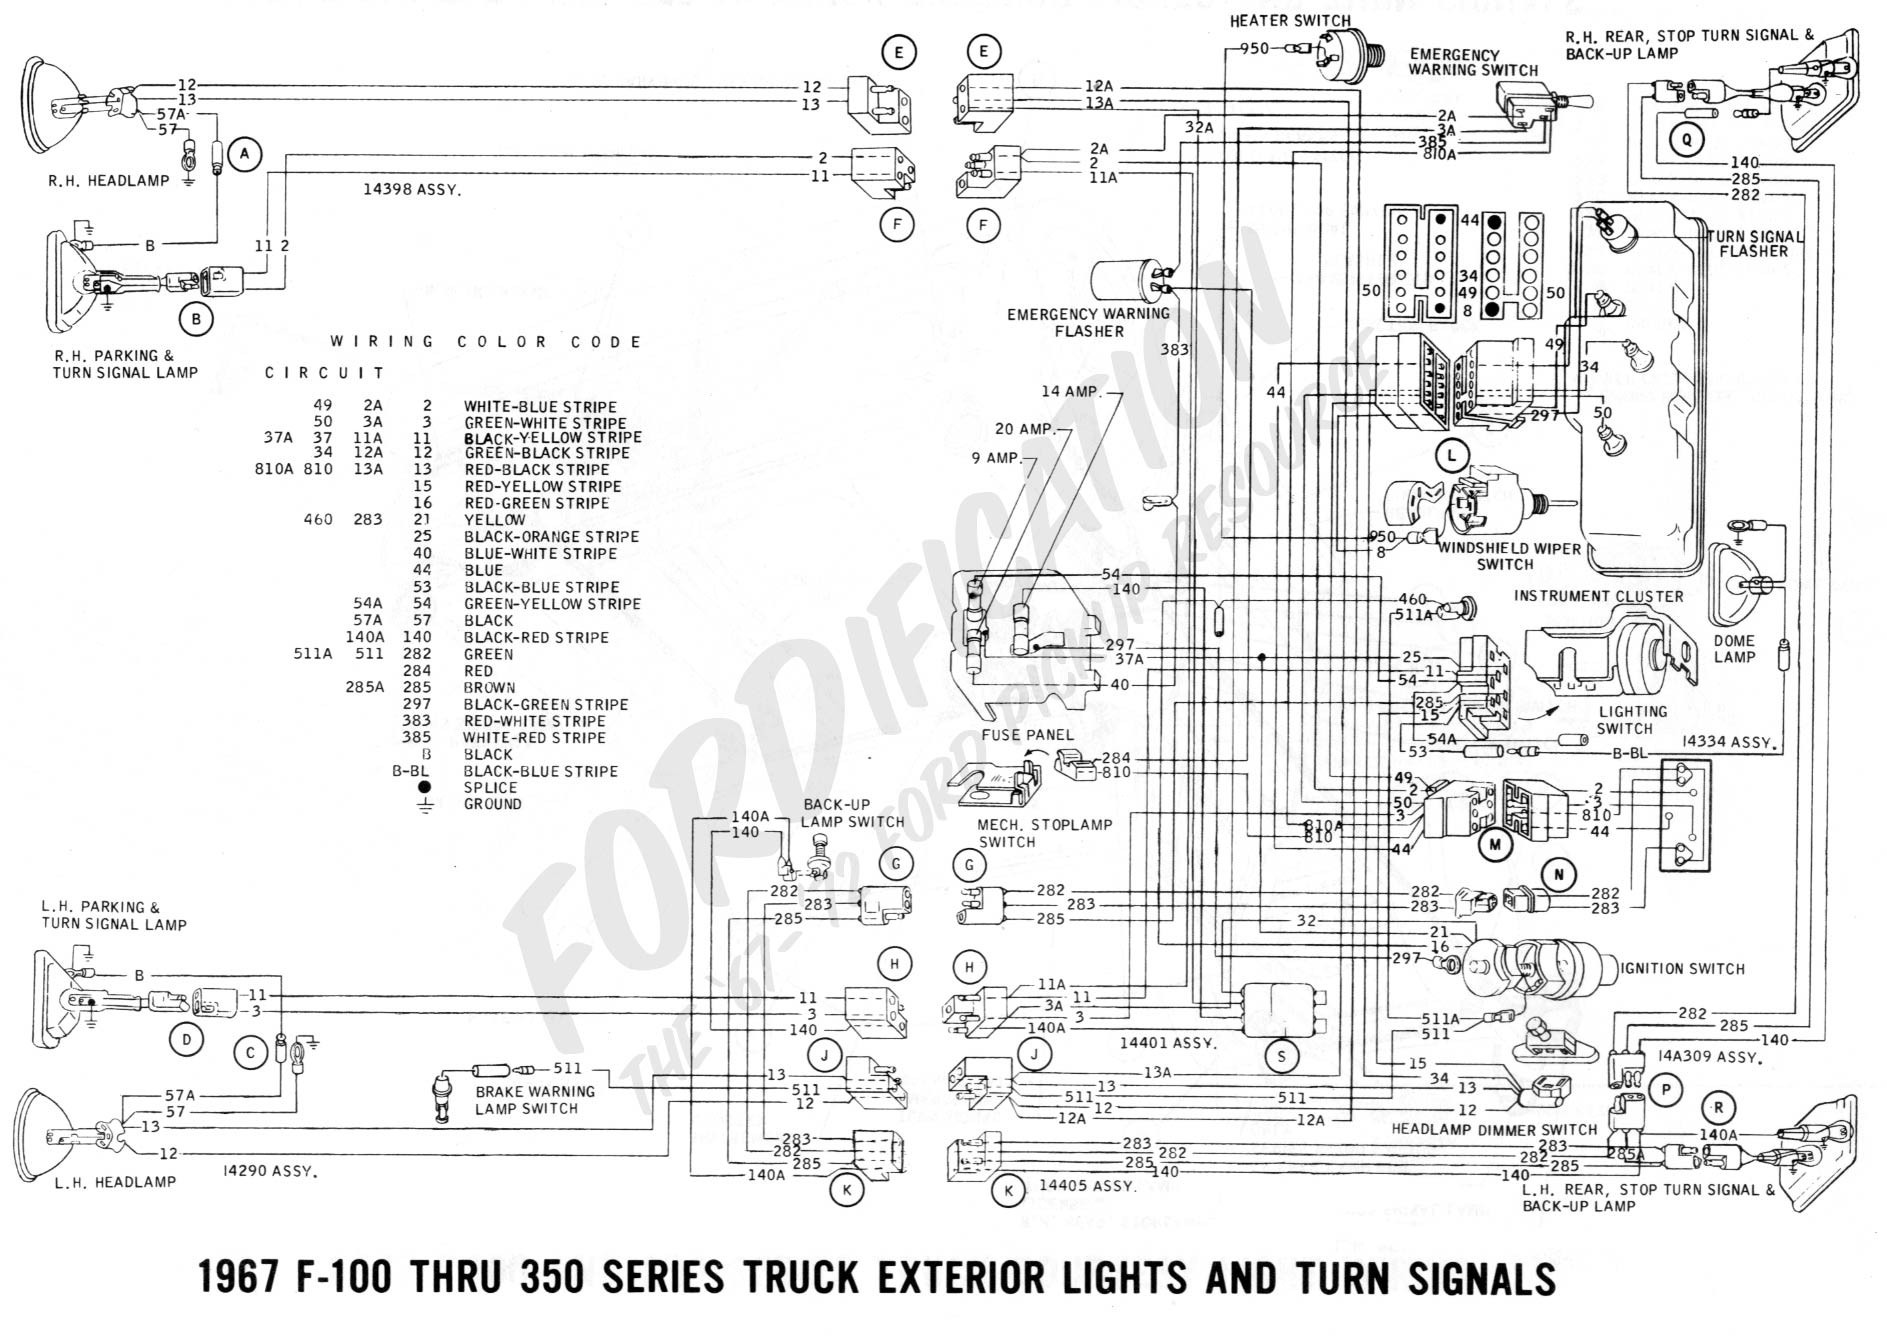 Turn Signal Wiring Diagram Chevy Truck Brake Light Related Post